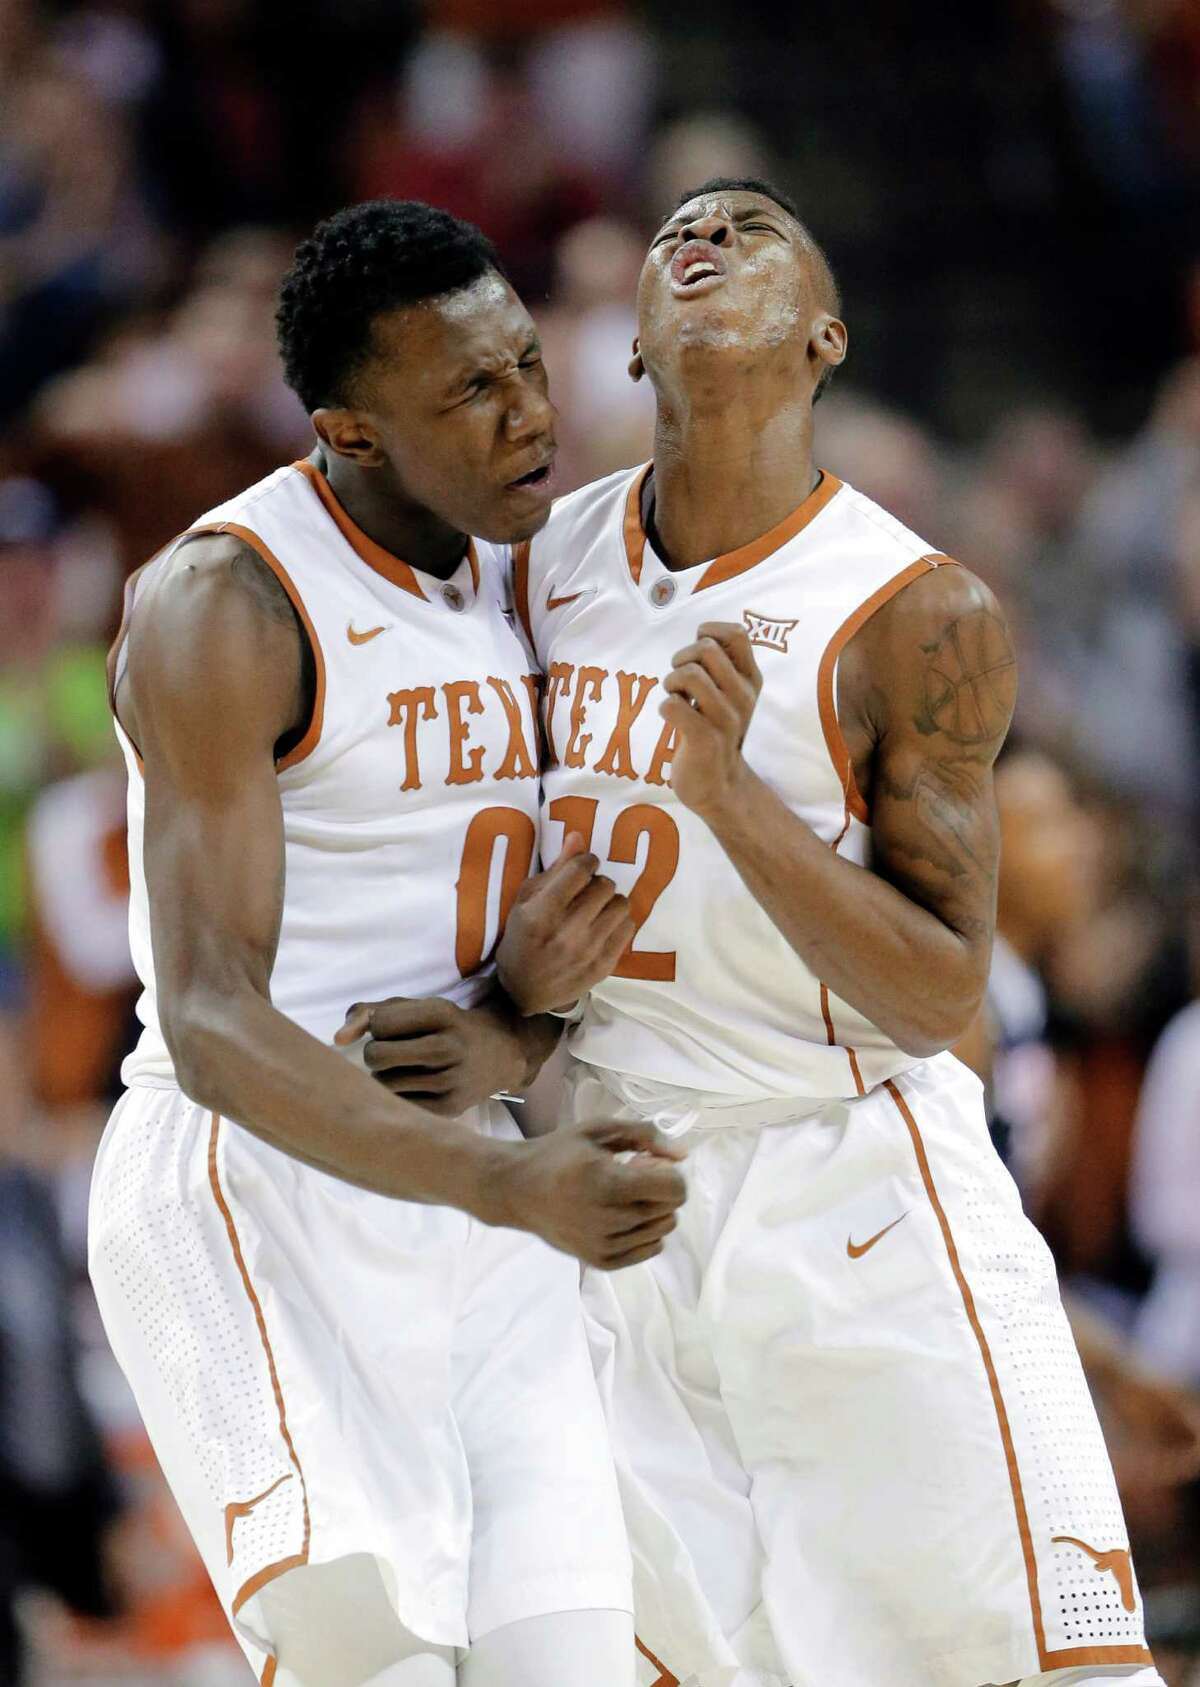 Texas guards Tevin Mack (0) and Kerwin Roach Jr. (12) celebrate during the first half of an NCAA college basketball game against Connecticut, Tuesday, Dec. 29, 2015, in Austin, Texas. (AP Photo/Eric Gay)